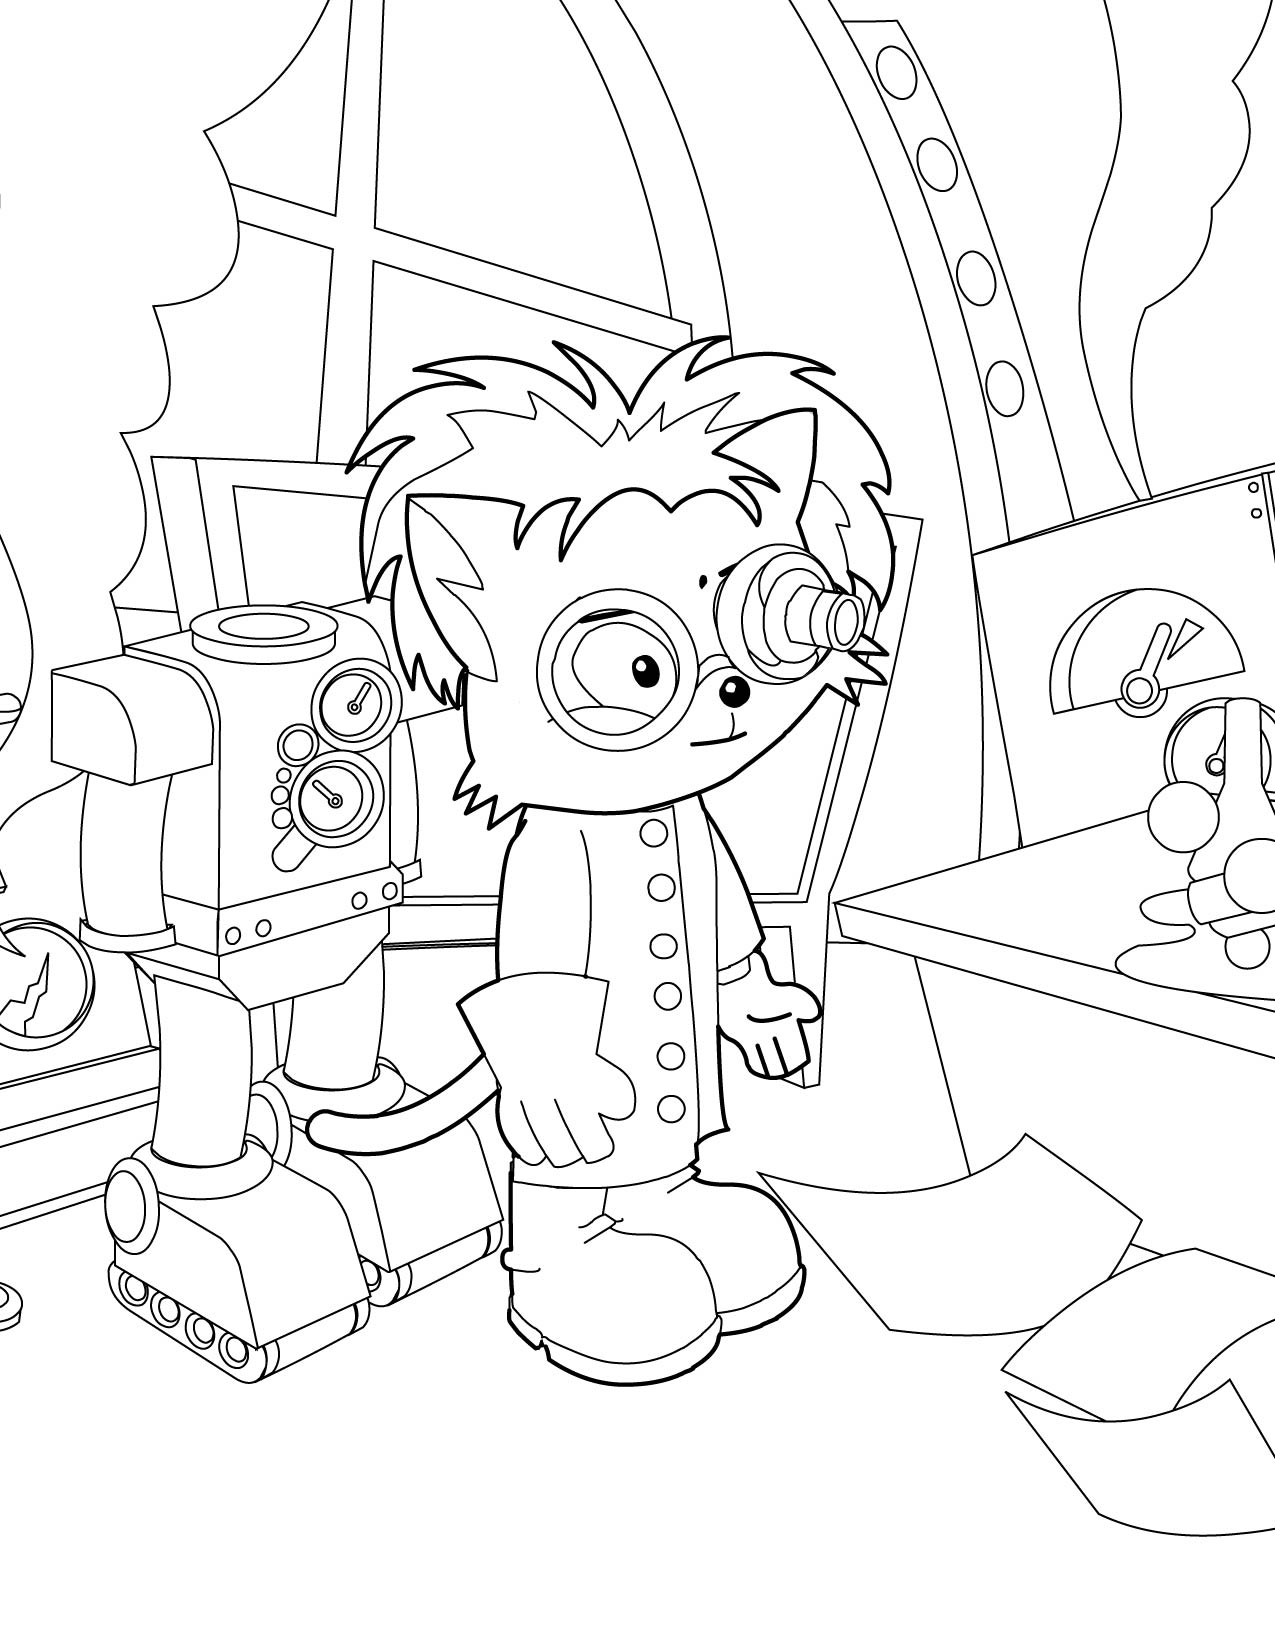 mad scientist coloring page handipoints